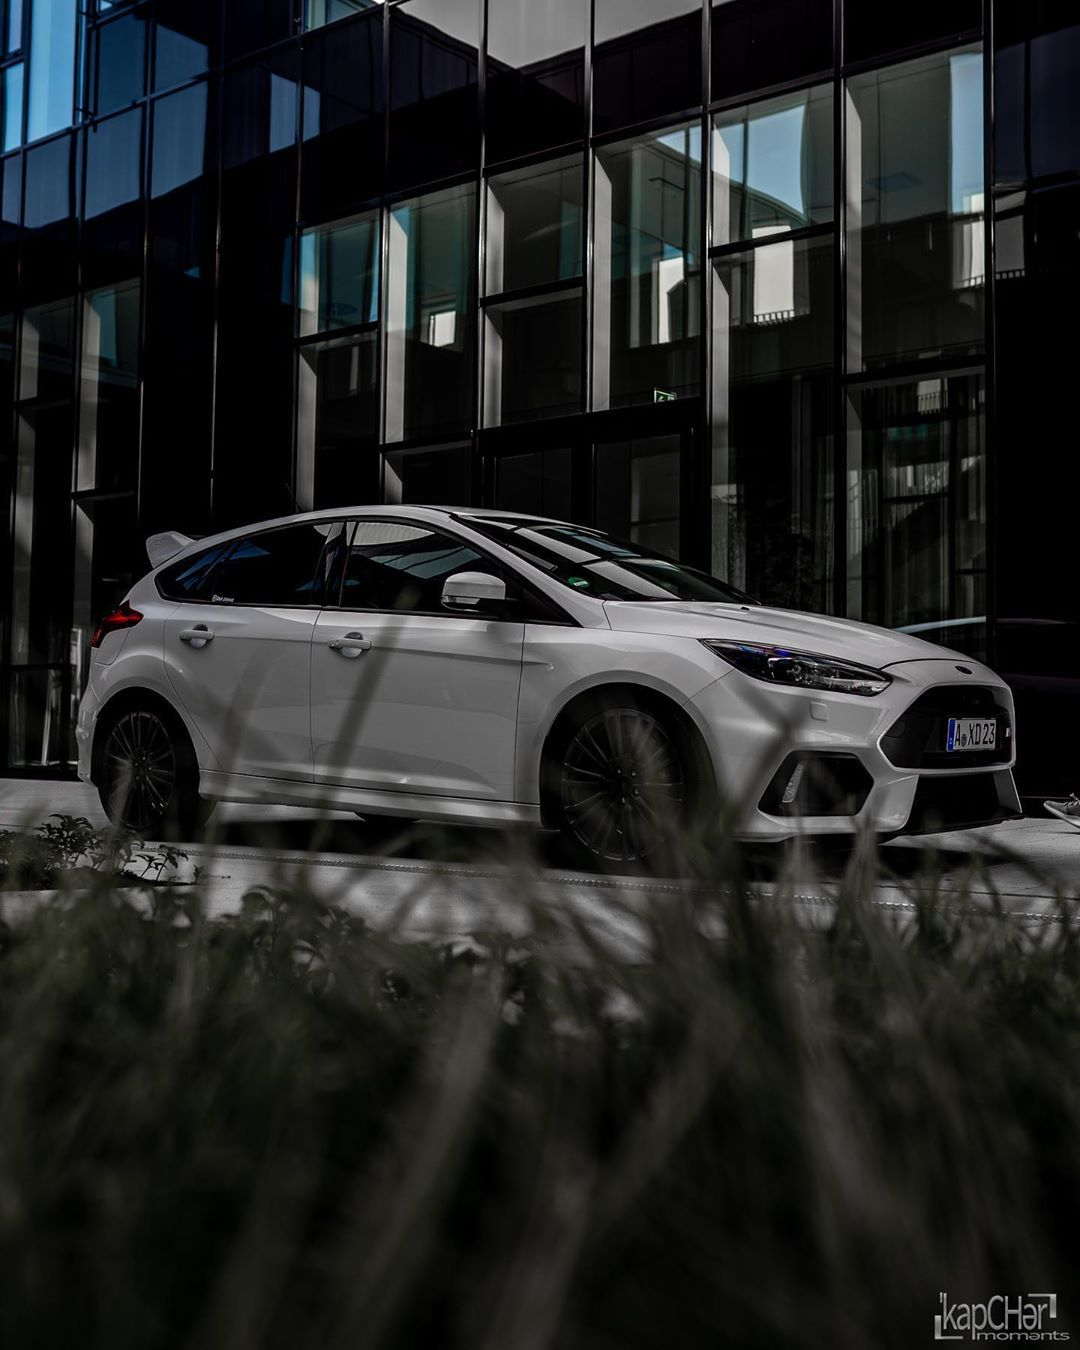 fantastic. ______________________________________________ #ford #fordperformance #fordperformanceclub #fordperformanceracing #fordfocus #focusrs #focusrsmk3 #focusrsowners #white #car #carsofinstagram #photo #photography #street #streetstyle #streetphotography #urban #urbanphotography #evening #eveningshot #augsburg #bayern Photo by @kapcher_moments